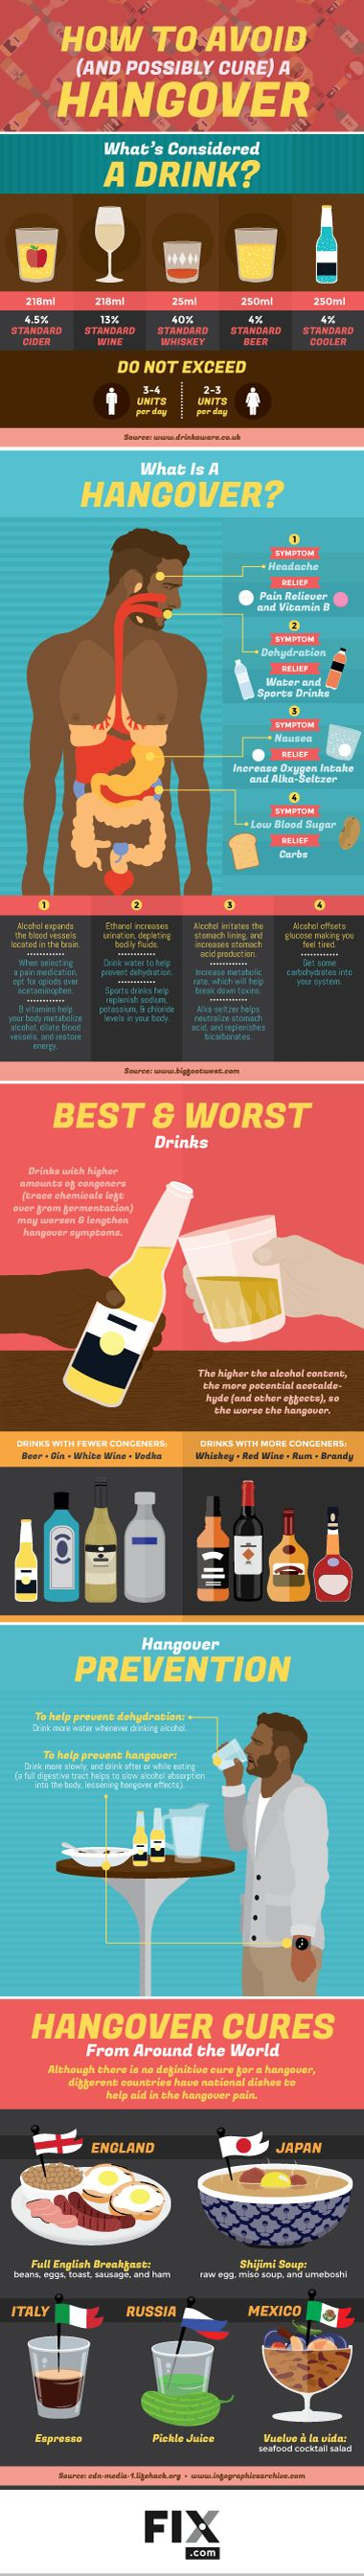 Hair of the dog isn't the only way to counter the dreaded hangover. Fix has tips to help you avoid the headaches, and tricks to deal with the after effects of a beverage or two #Infografía #Infographic